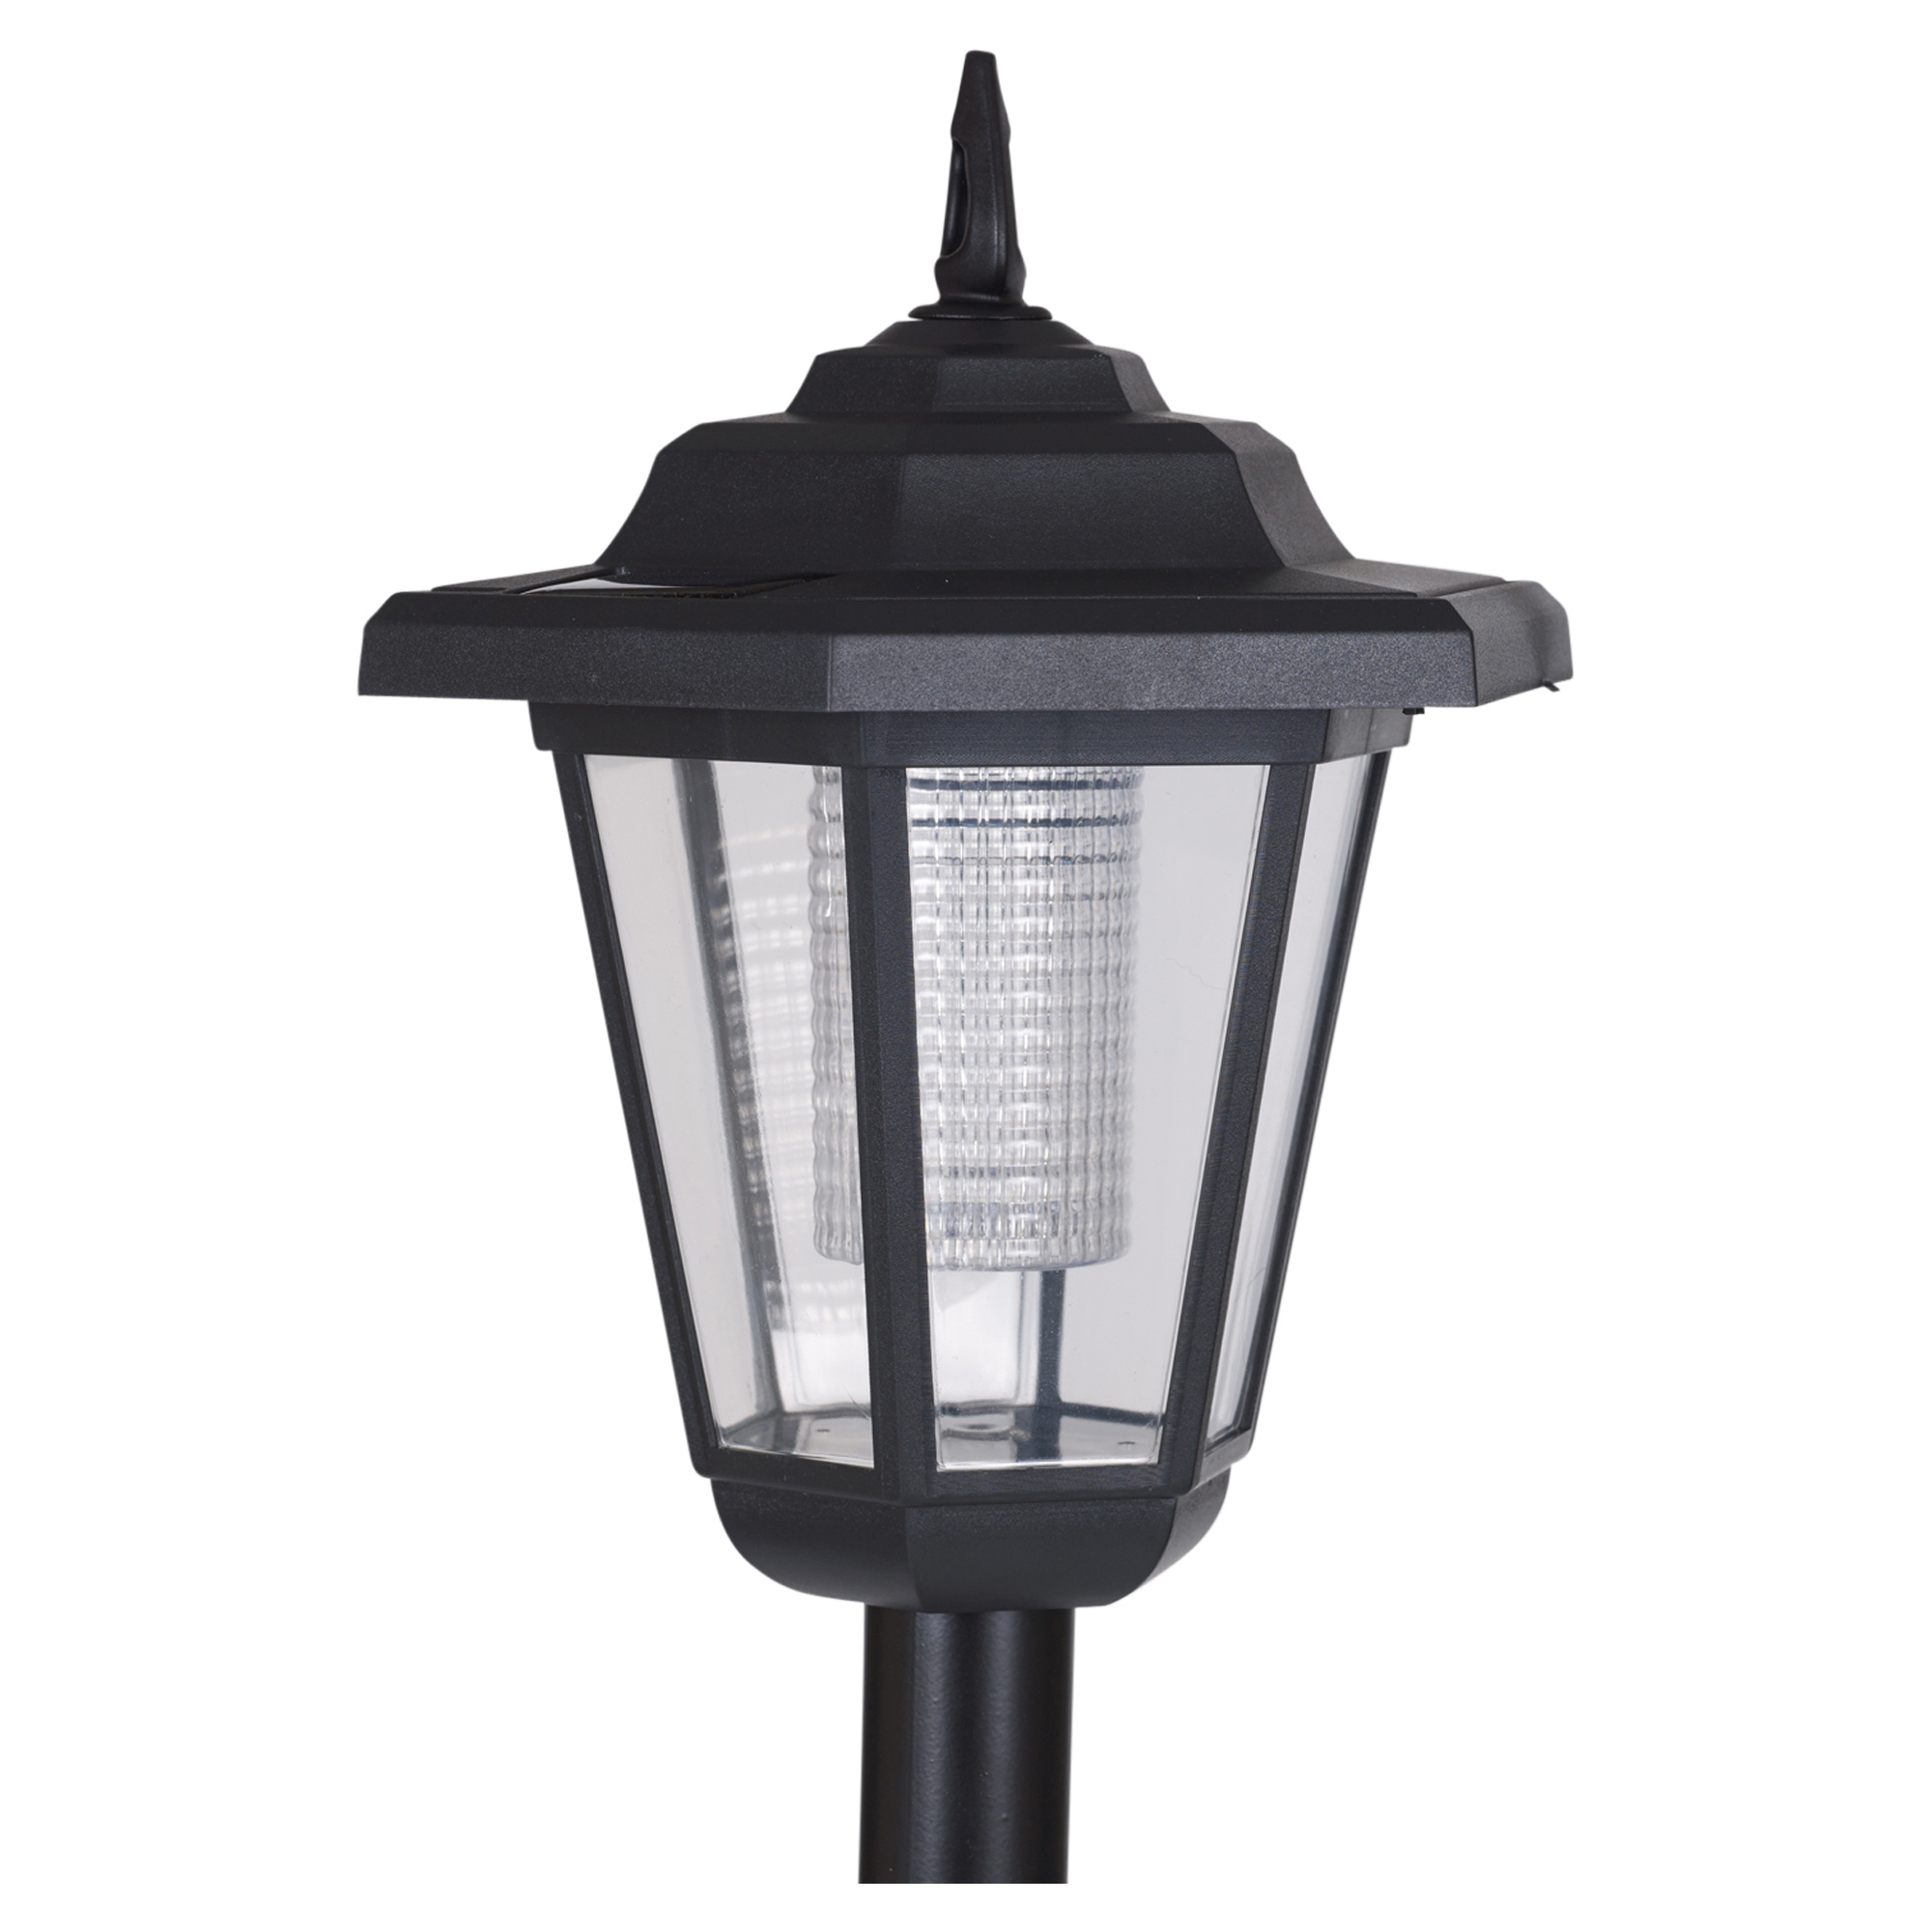 solar powered garden lights lantern lamp black led pathway driveway outdoor post. Black Bedroom Furniture Sets. Home Design Ideas